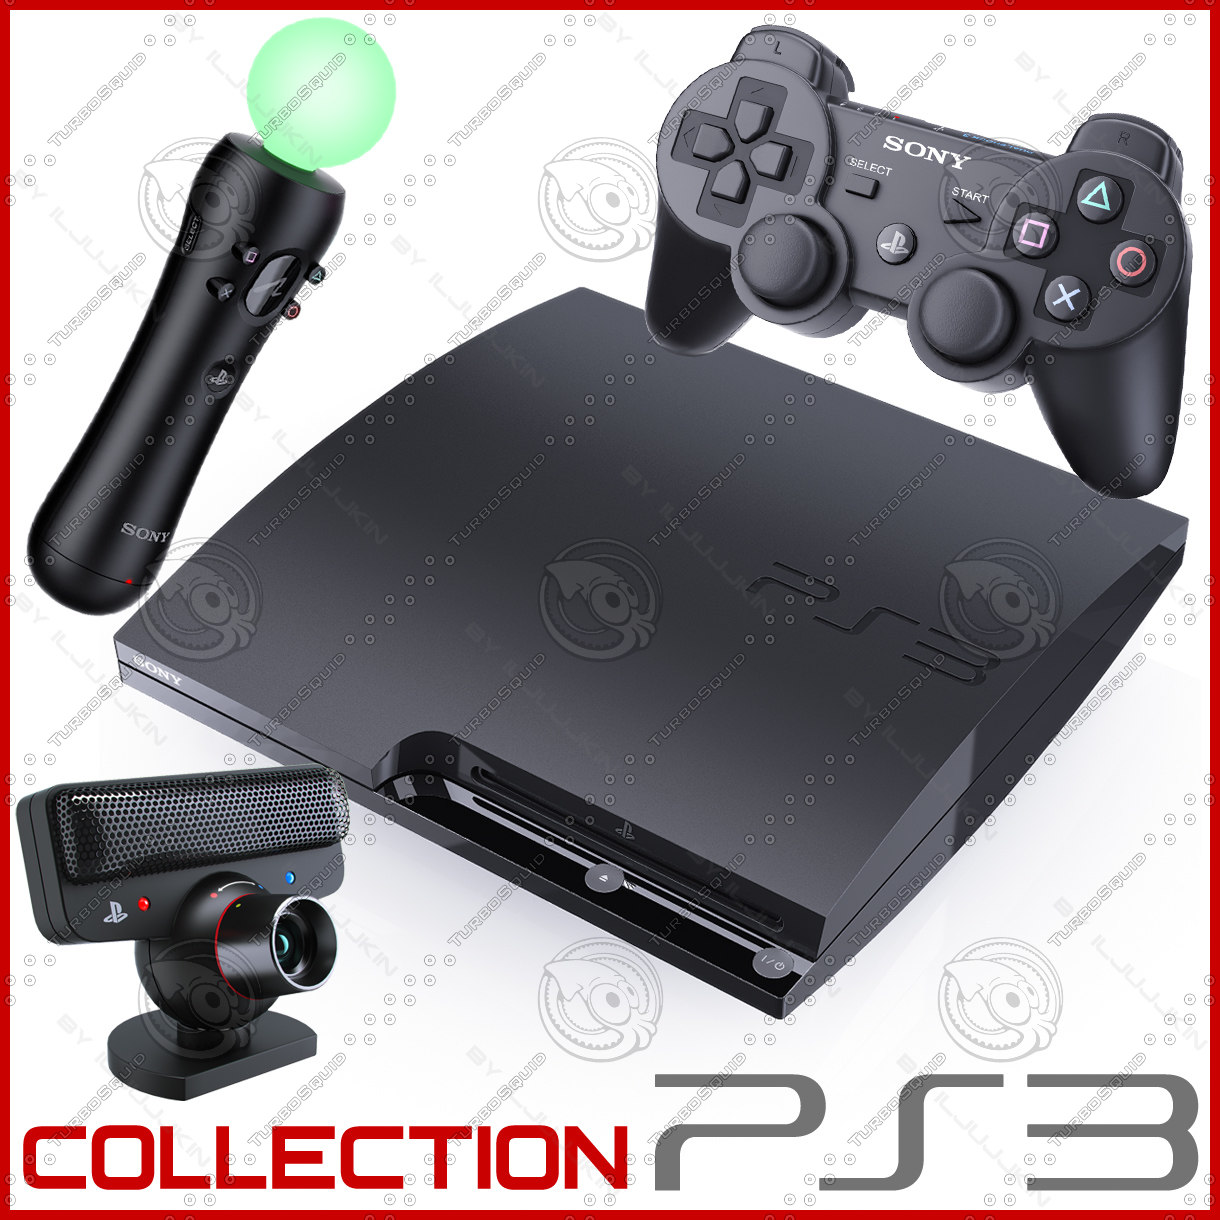 PS3_collection.jpg